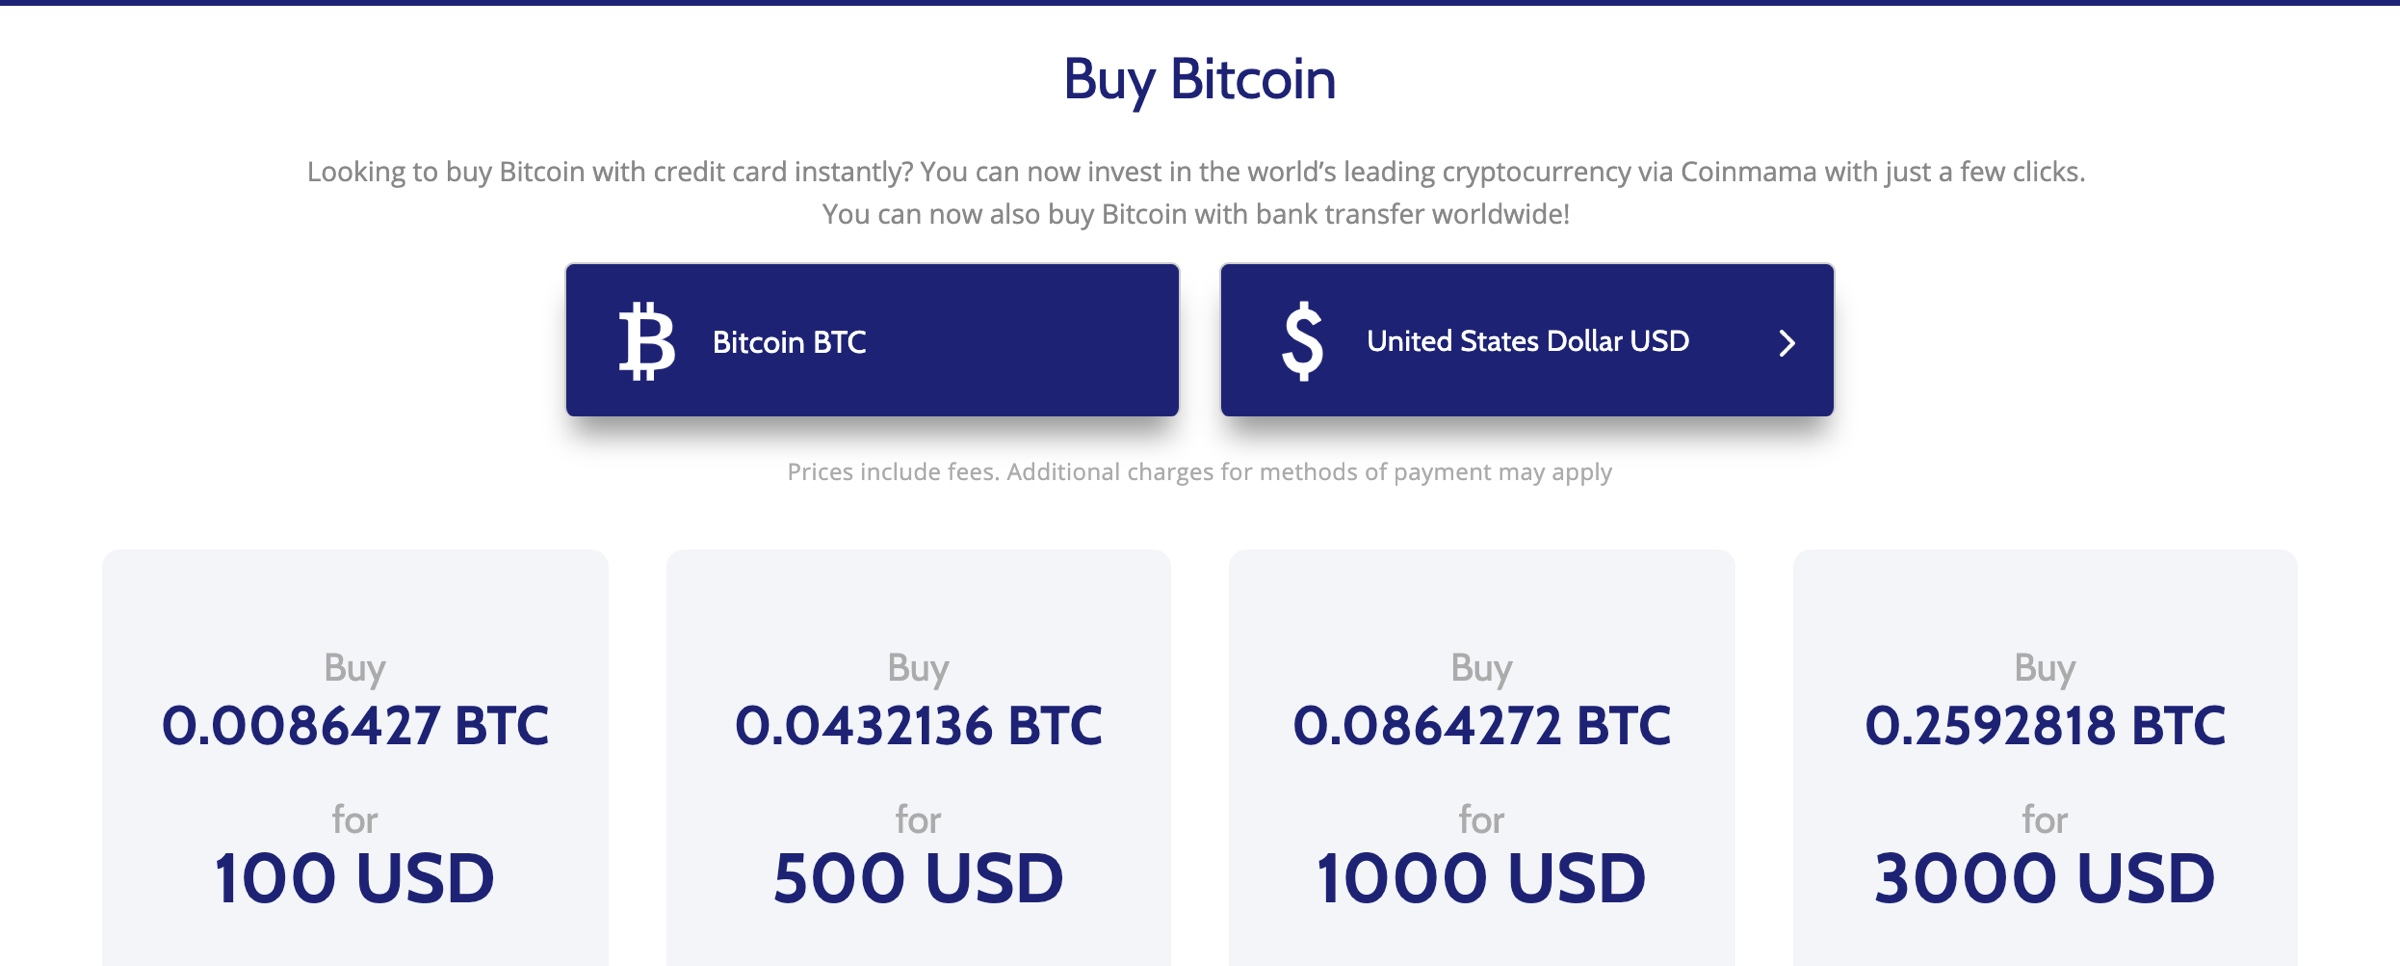 buy cryptocurrency no id